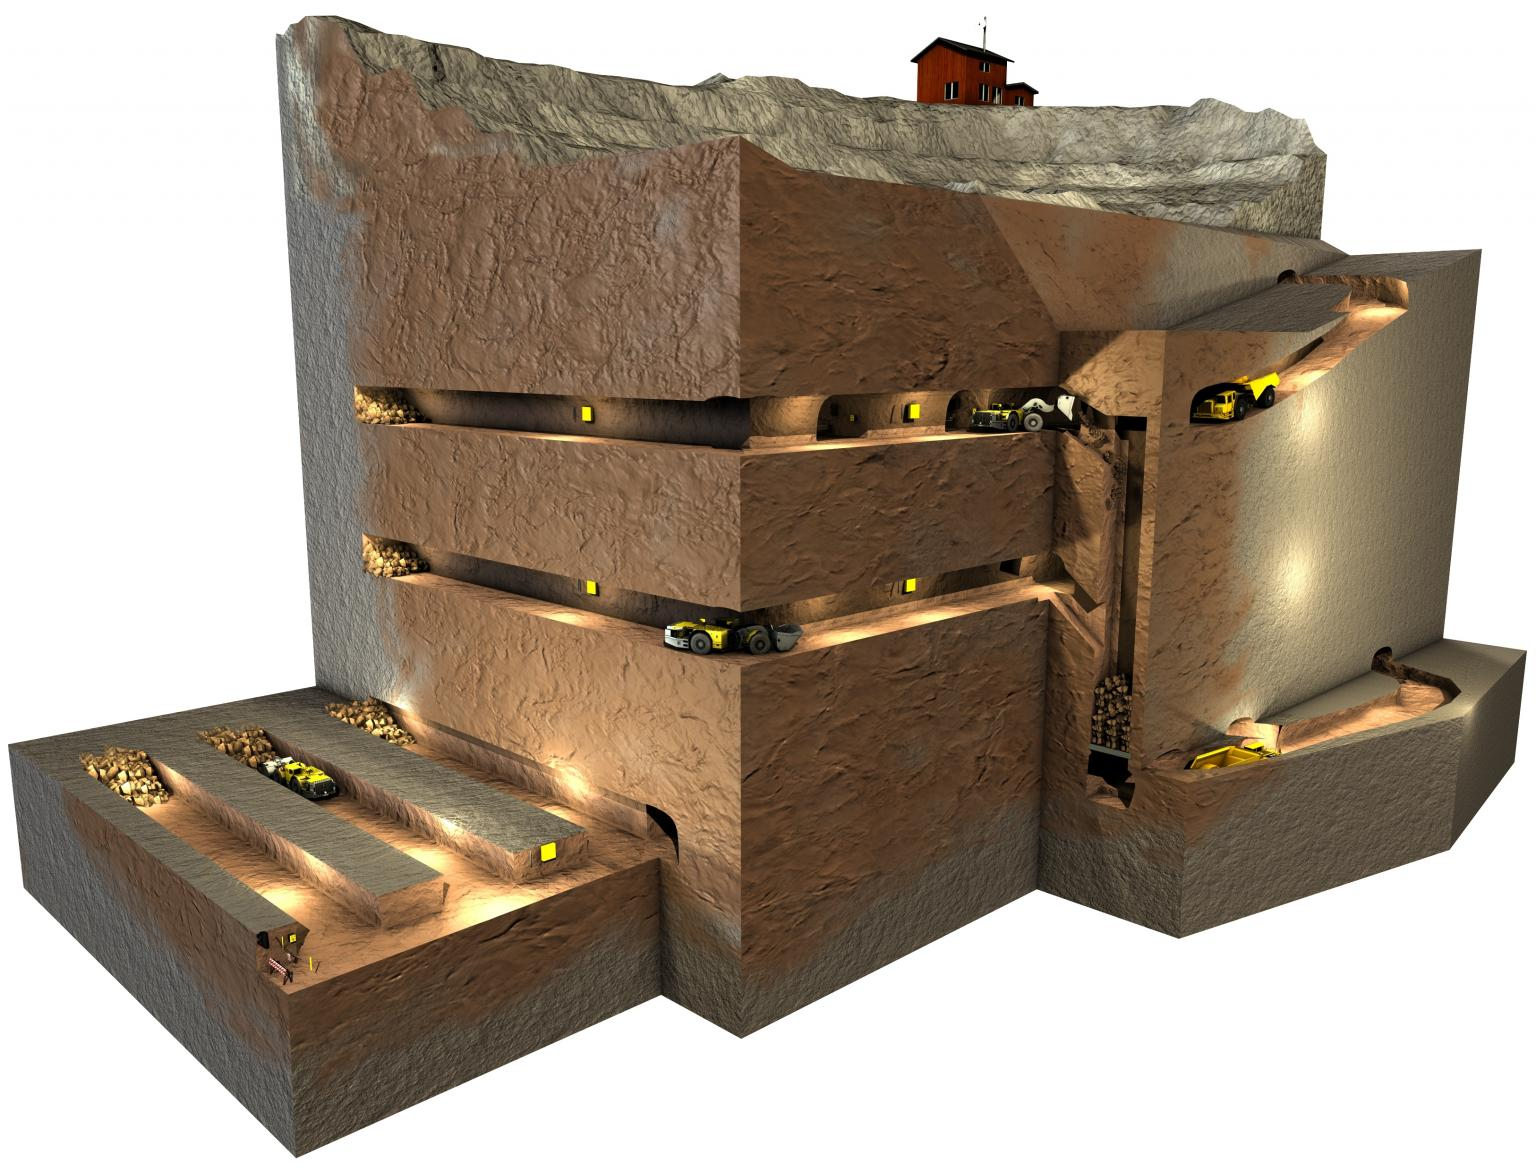 Atlas Copco's concept on an underground mine using Scopptram LHDs operated by automation from the surface